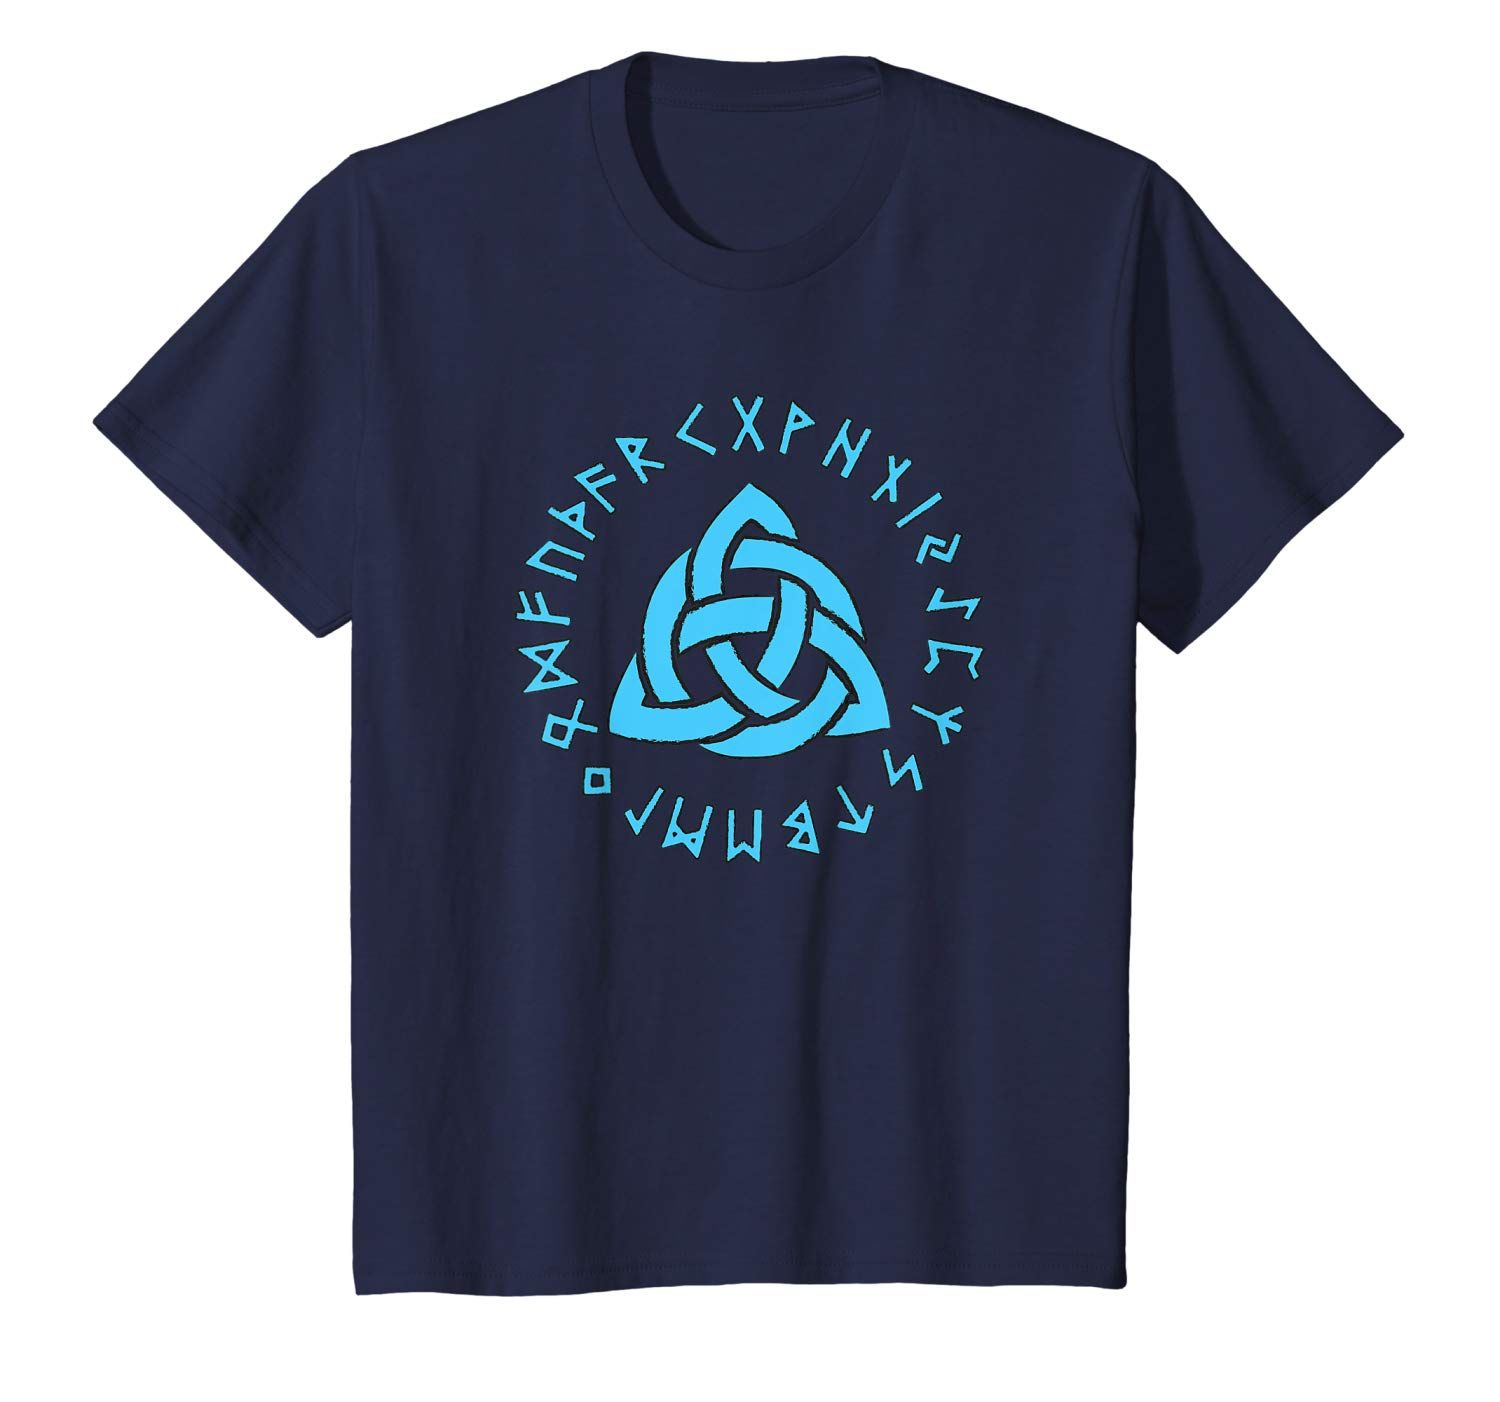 Vikings Norse Mythology Celtic Knot Symbol T-Shirt #norsemythology